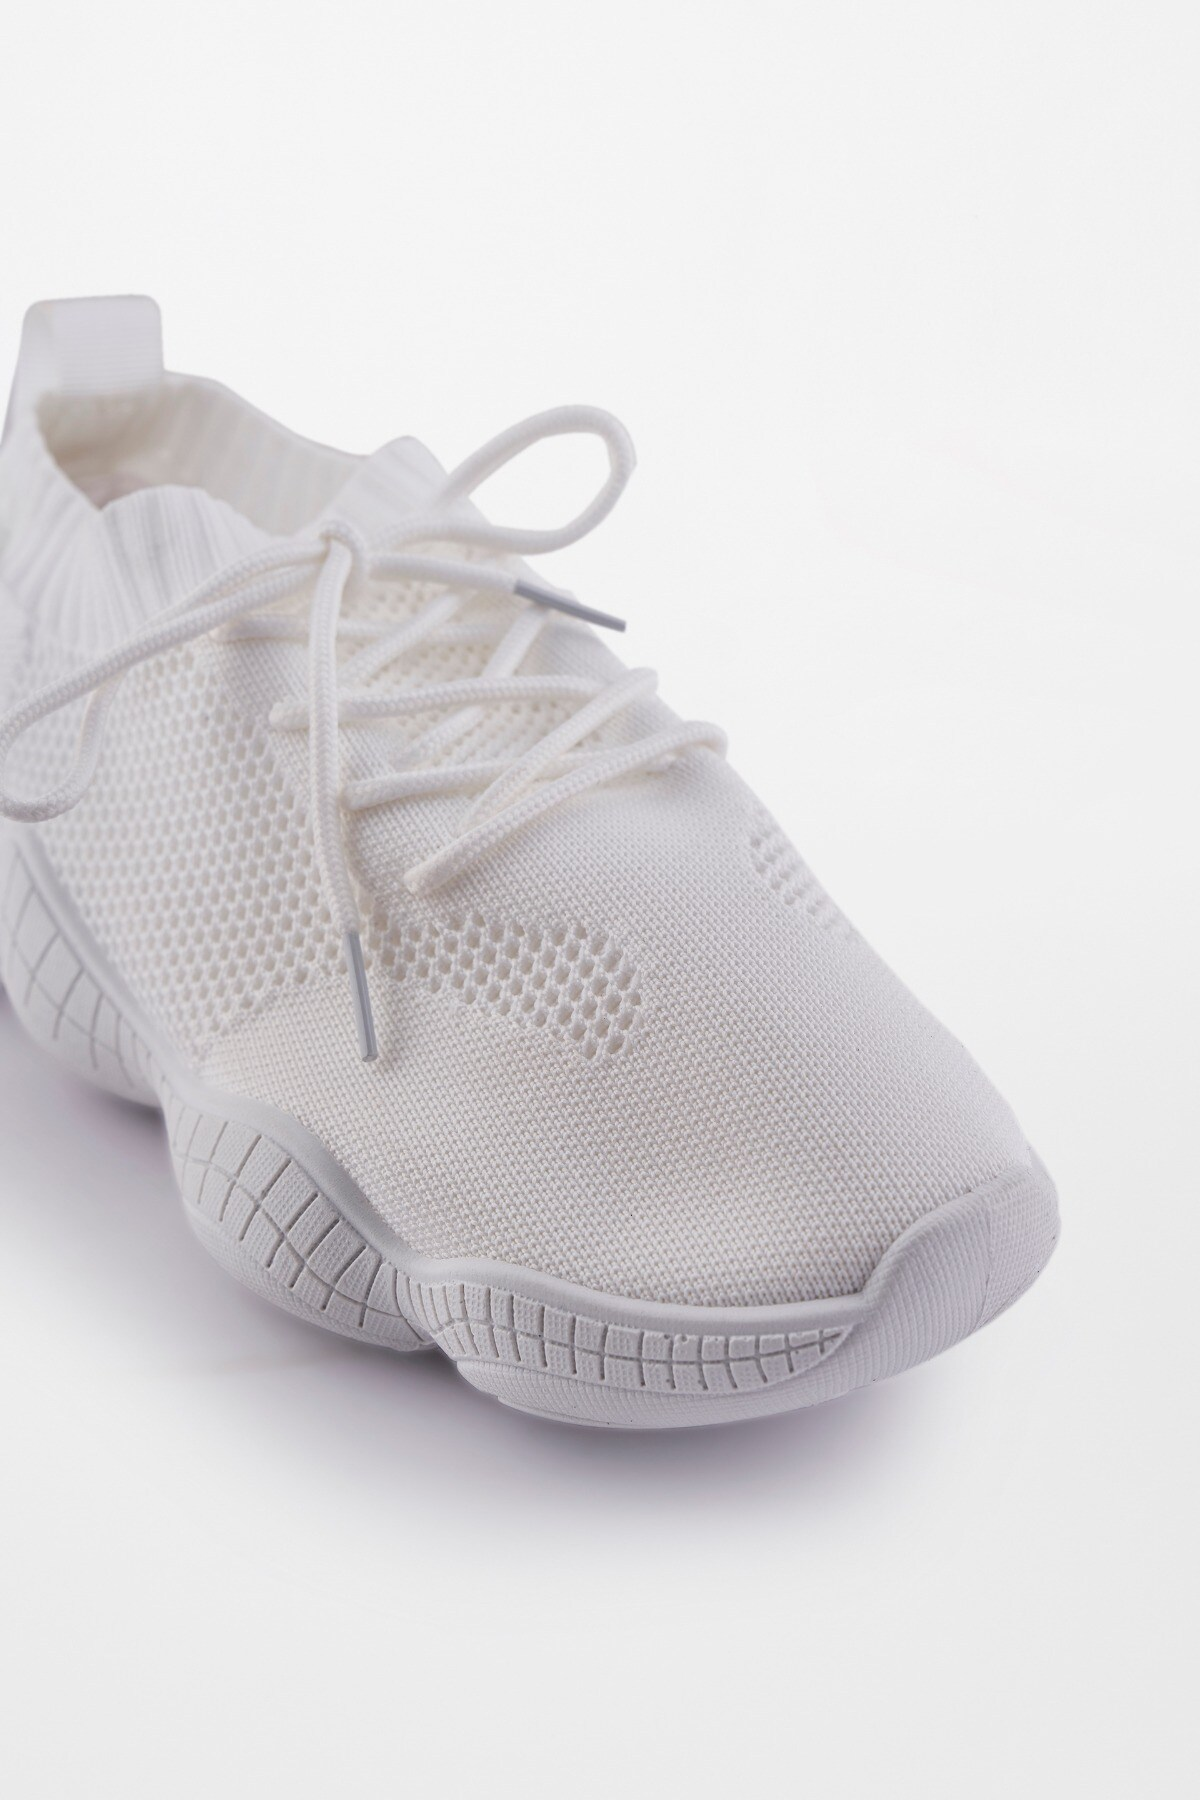 AND | White Shoes